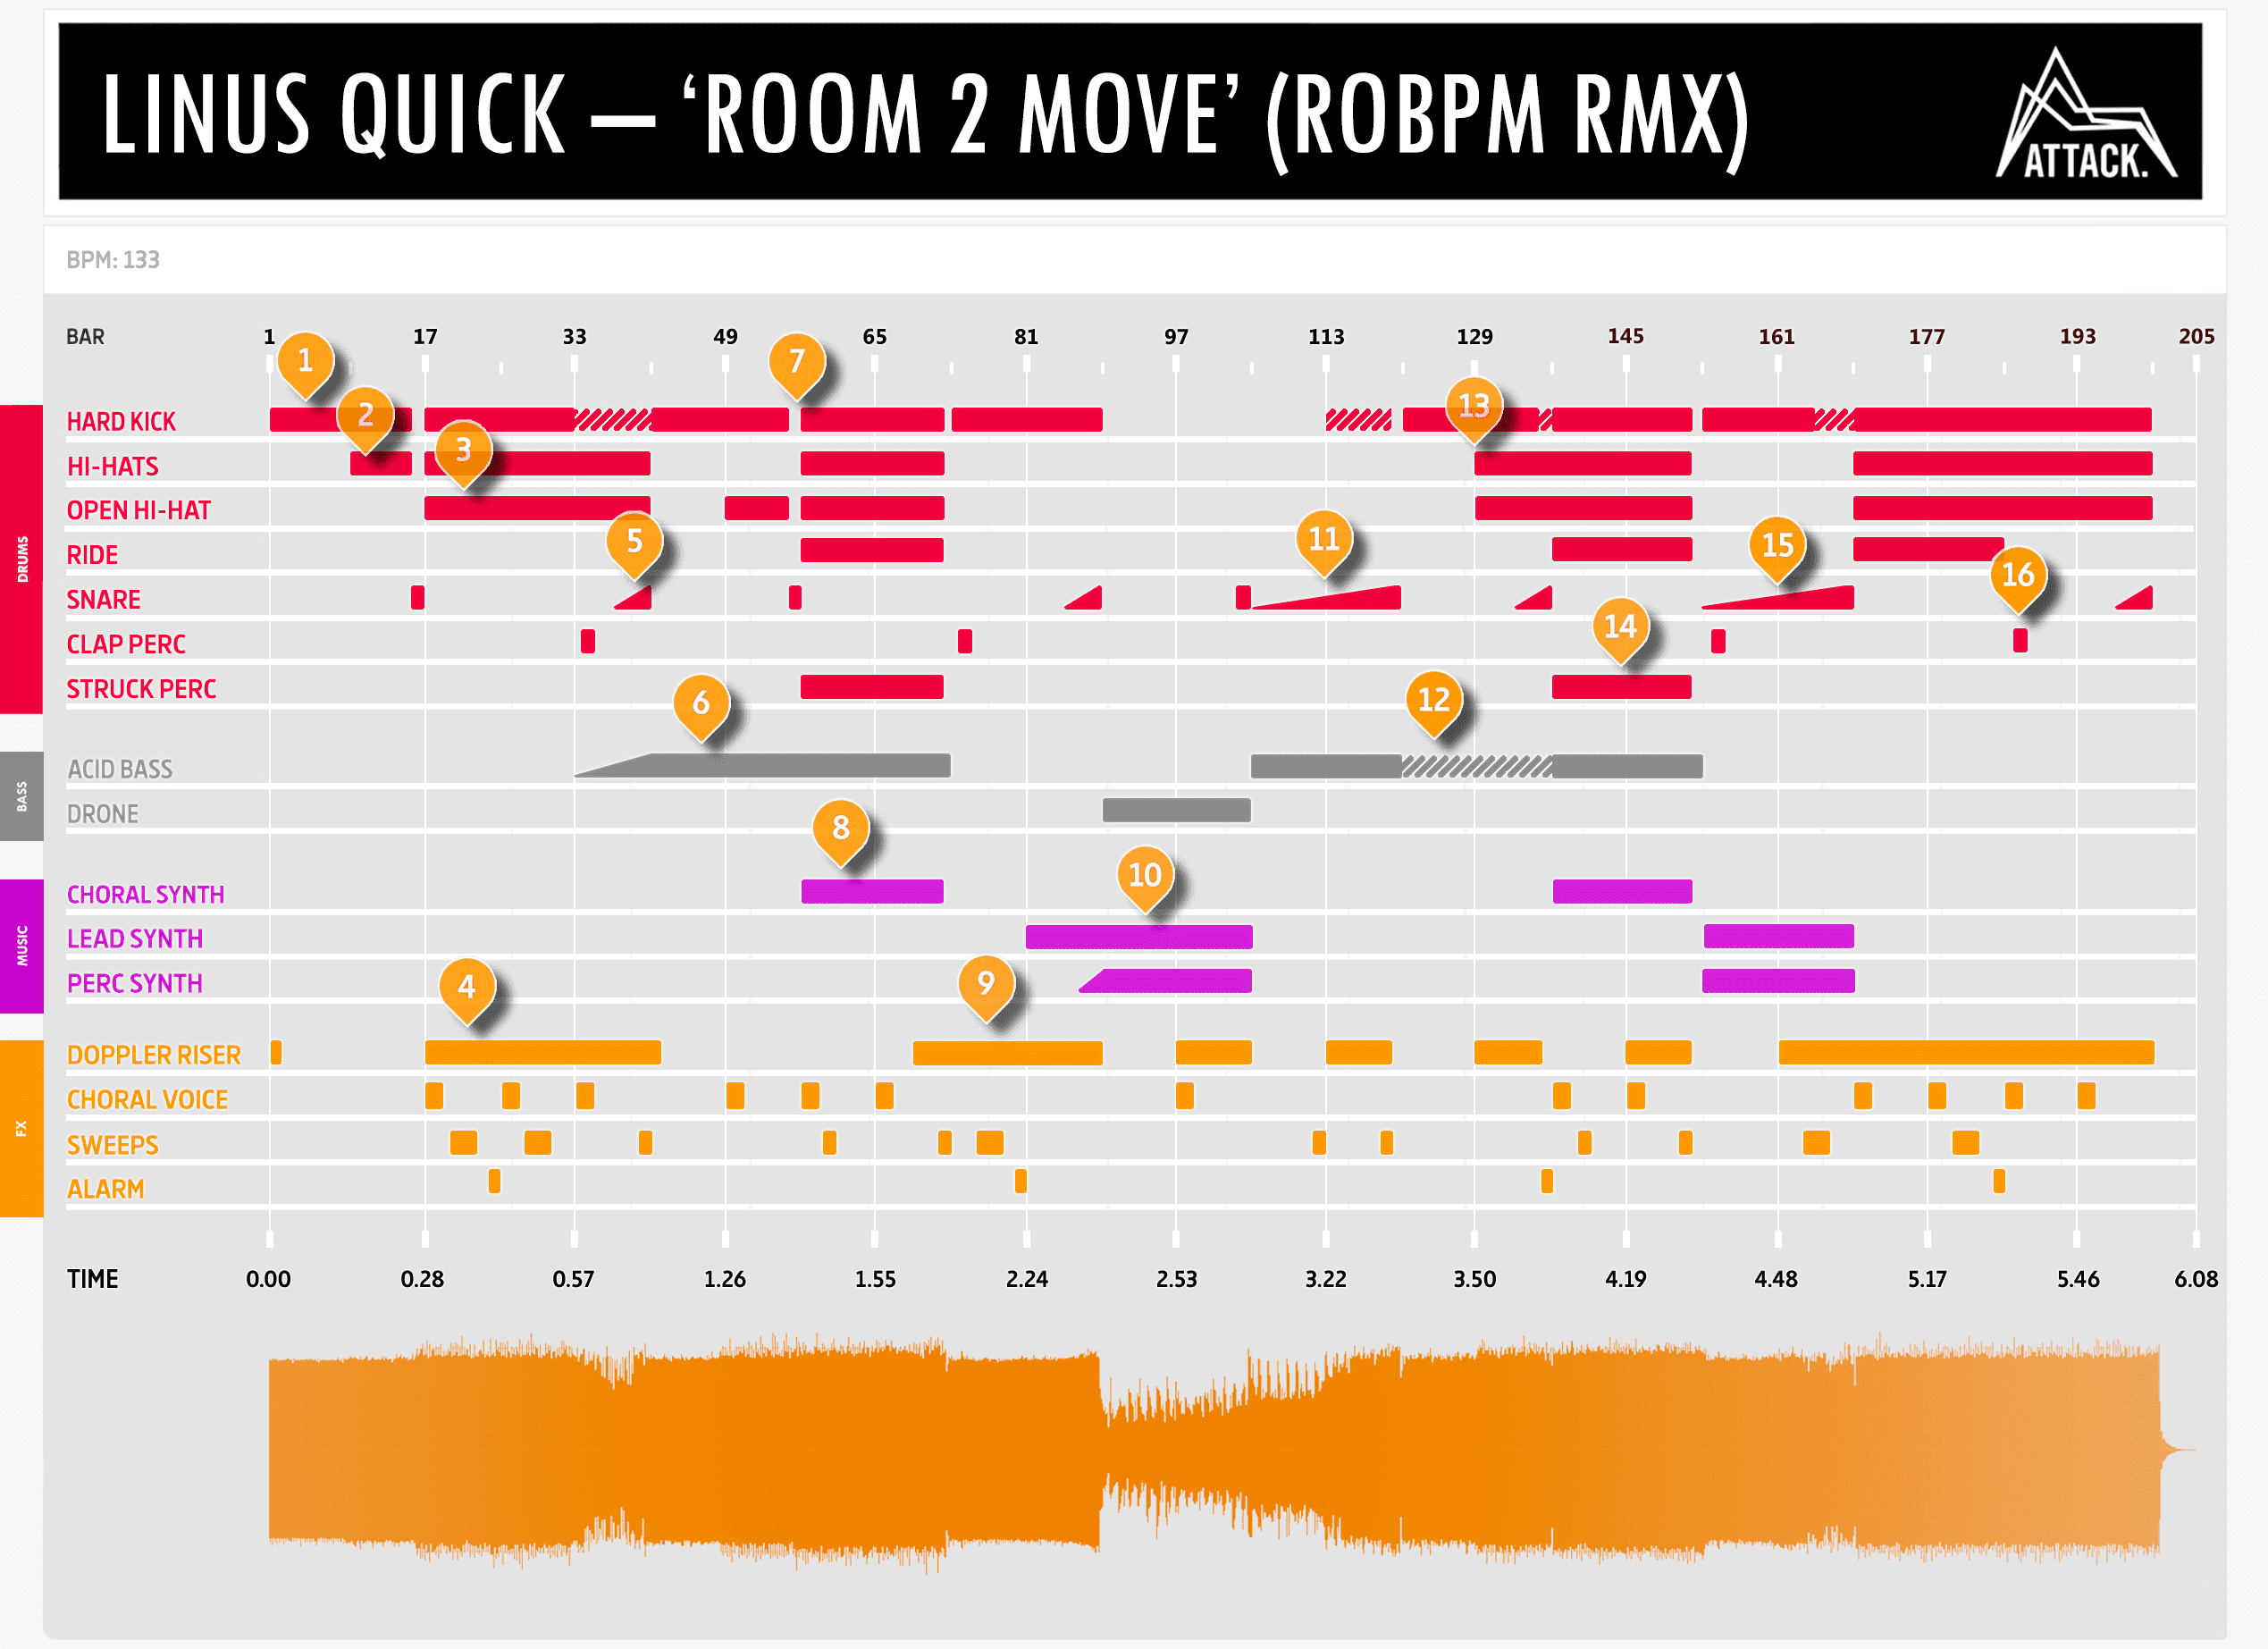 Linus Quick Room 2 move Robpm rmx